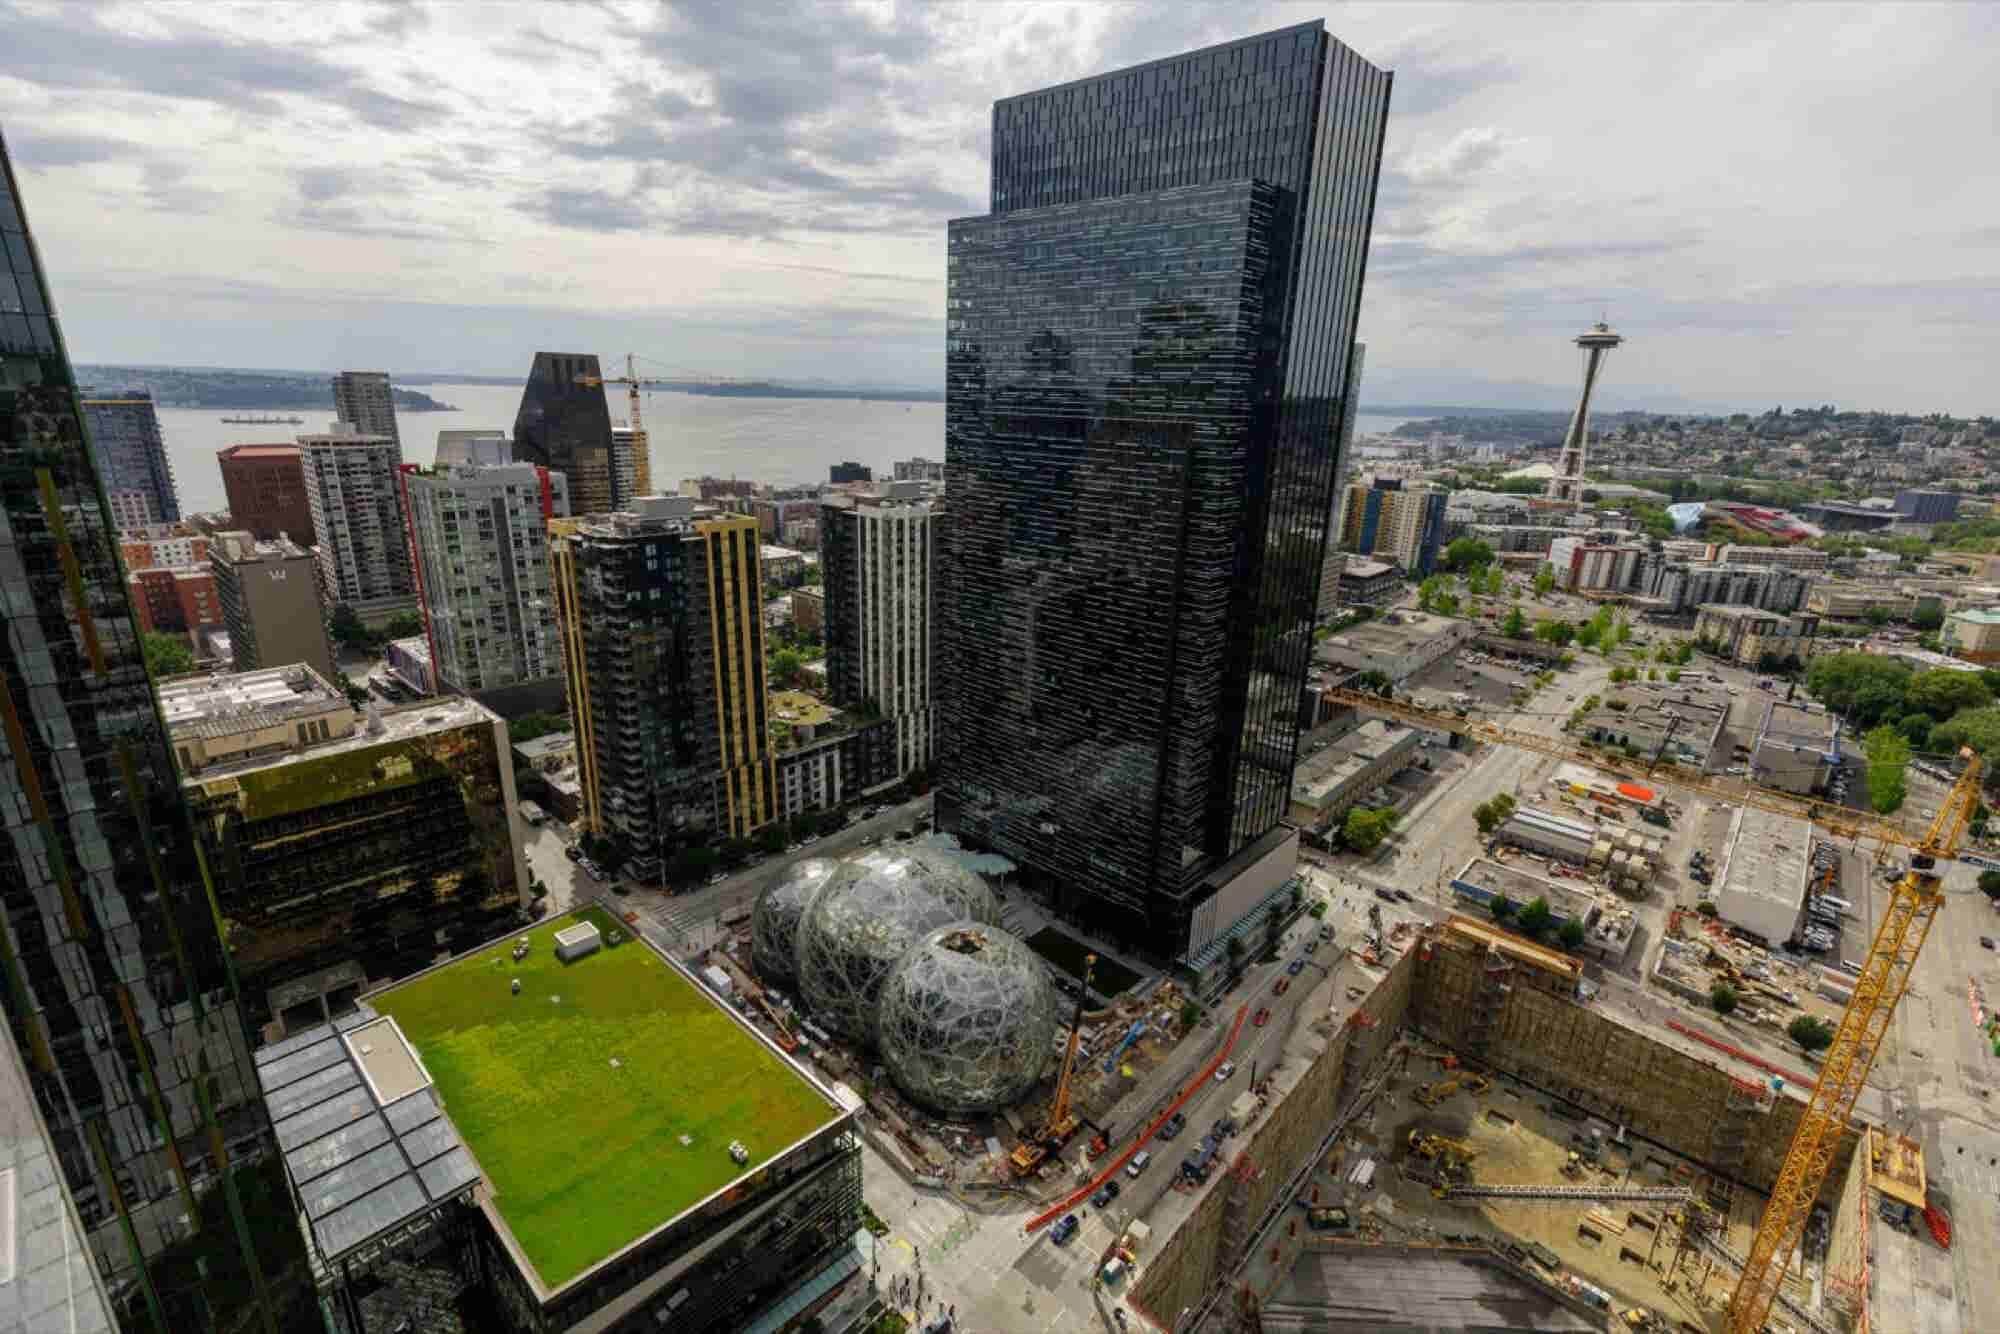 Amazon's Search for HQ2 Proves That Location, Location, Location Is Still What Matters Most